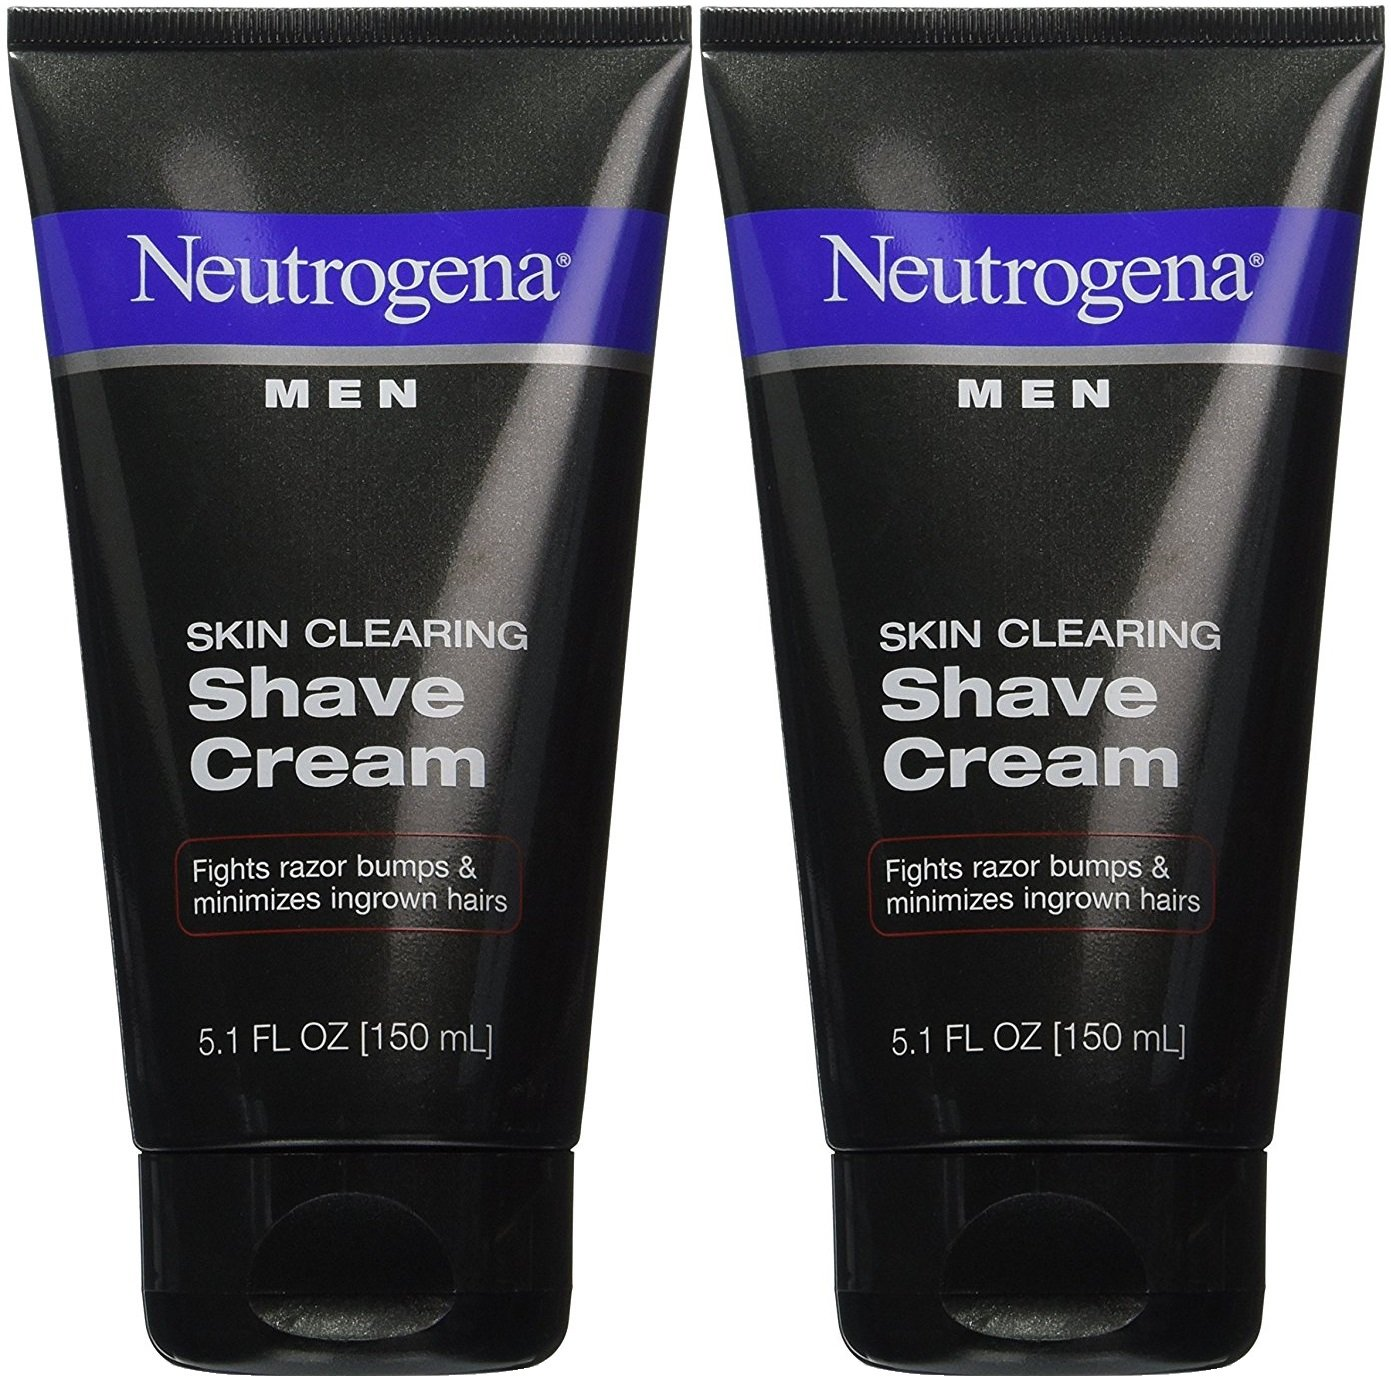 Neutrogena Men Skin Clearing Shave Cream - 5.1 oz - 2 pk Quidsi JJ-835B